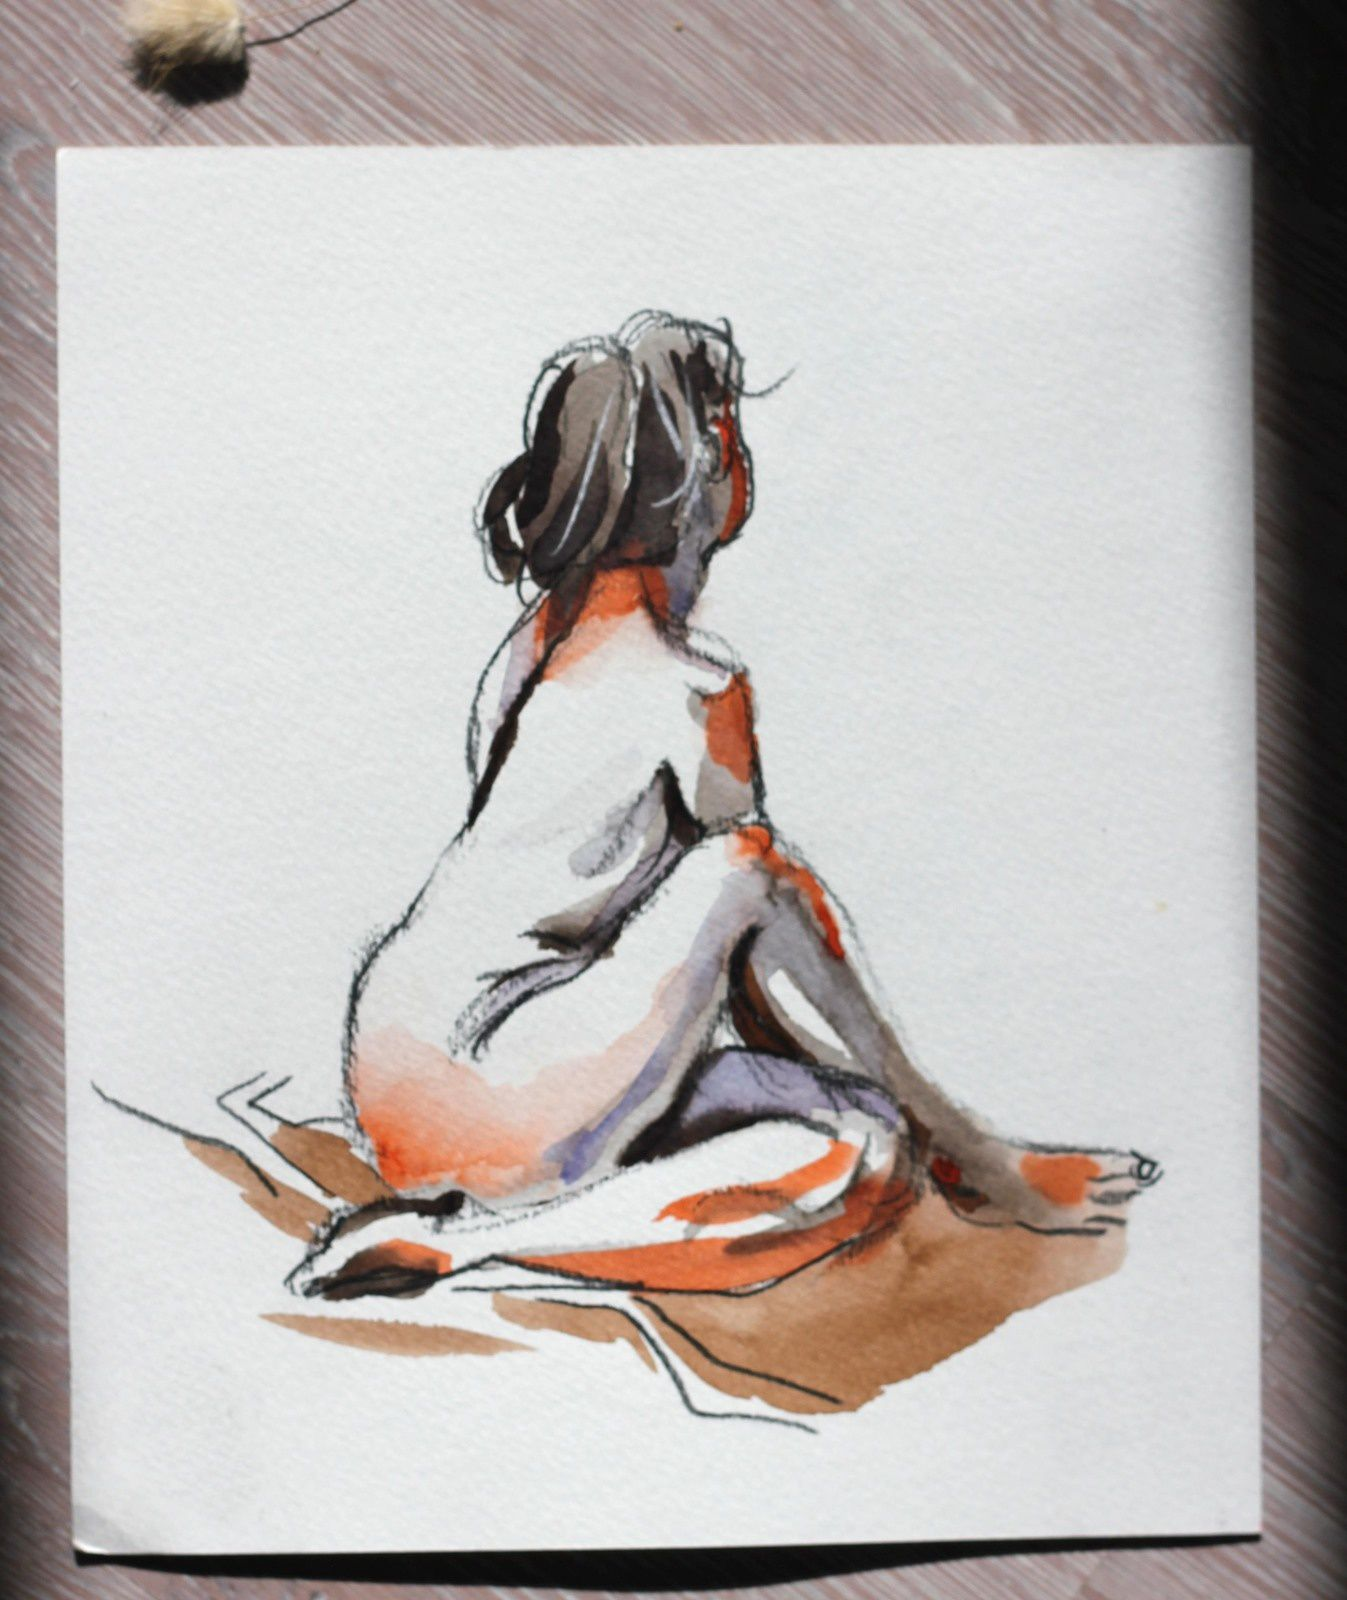 Modèle Vivant : pose de 5 minutes à l'aquarelle / Life-drawing : required time of 5 minutes, a watercolor